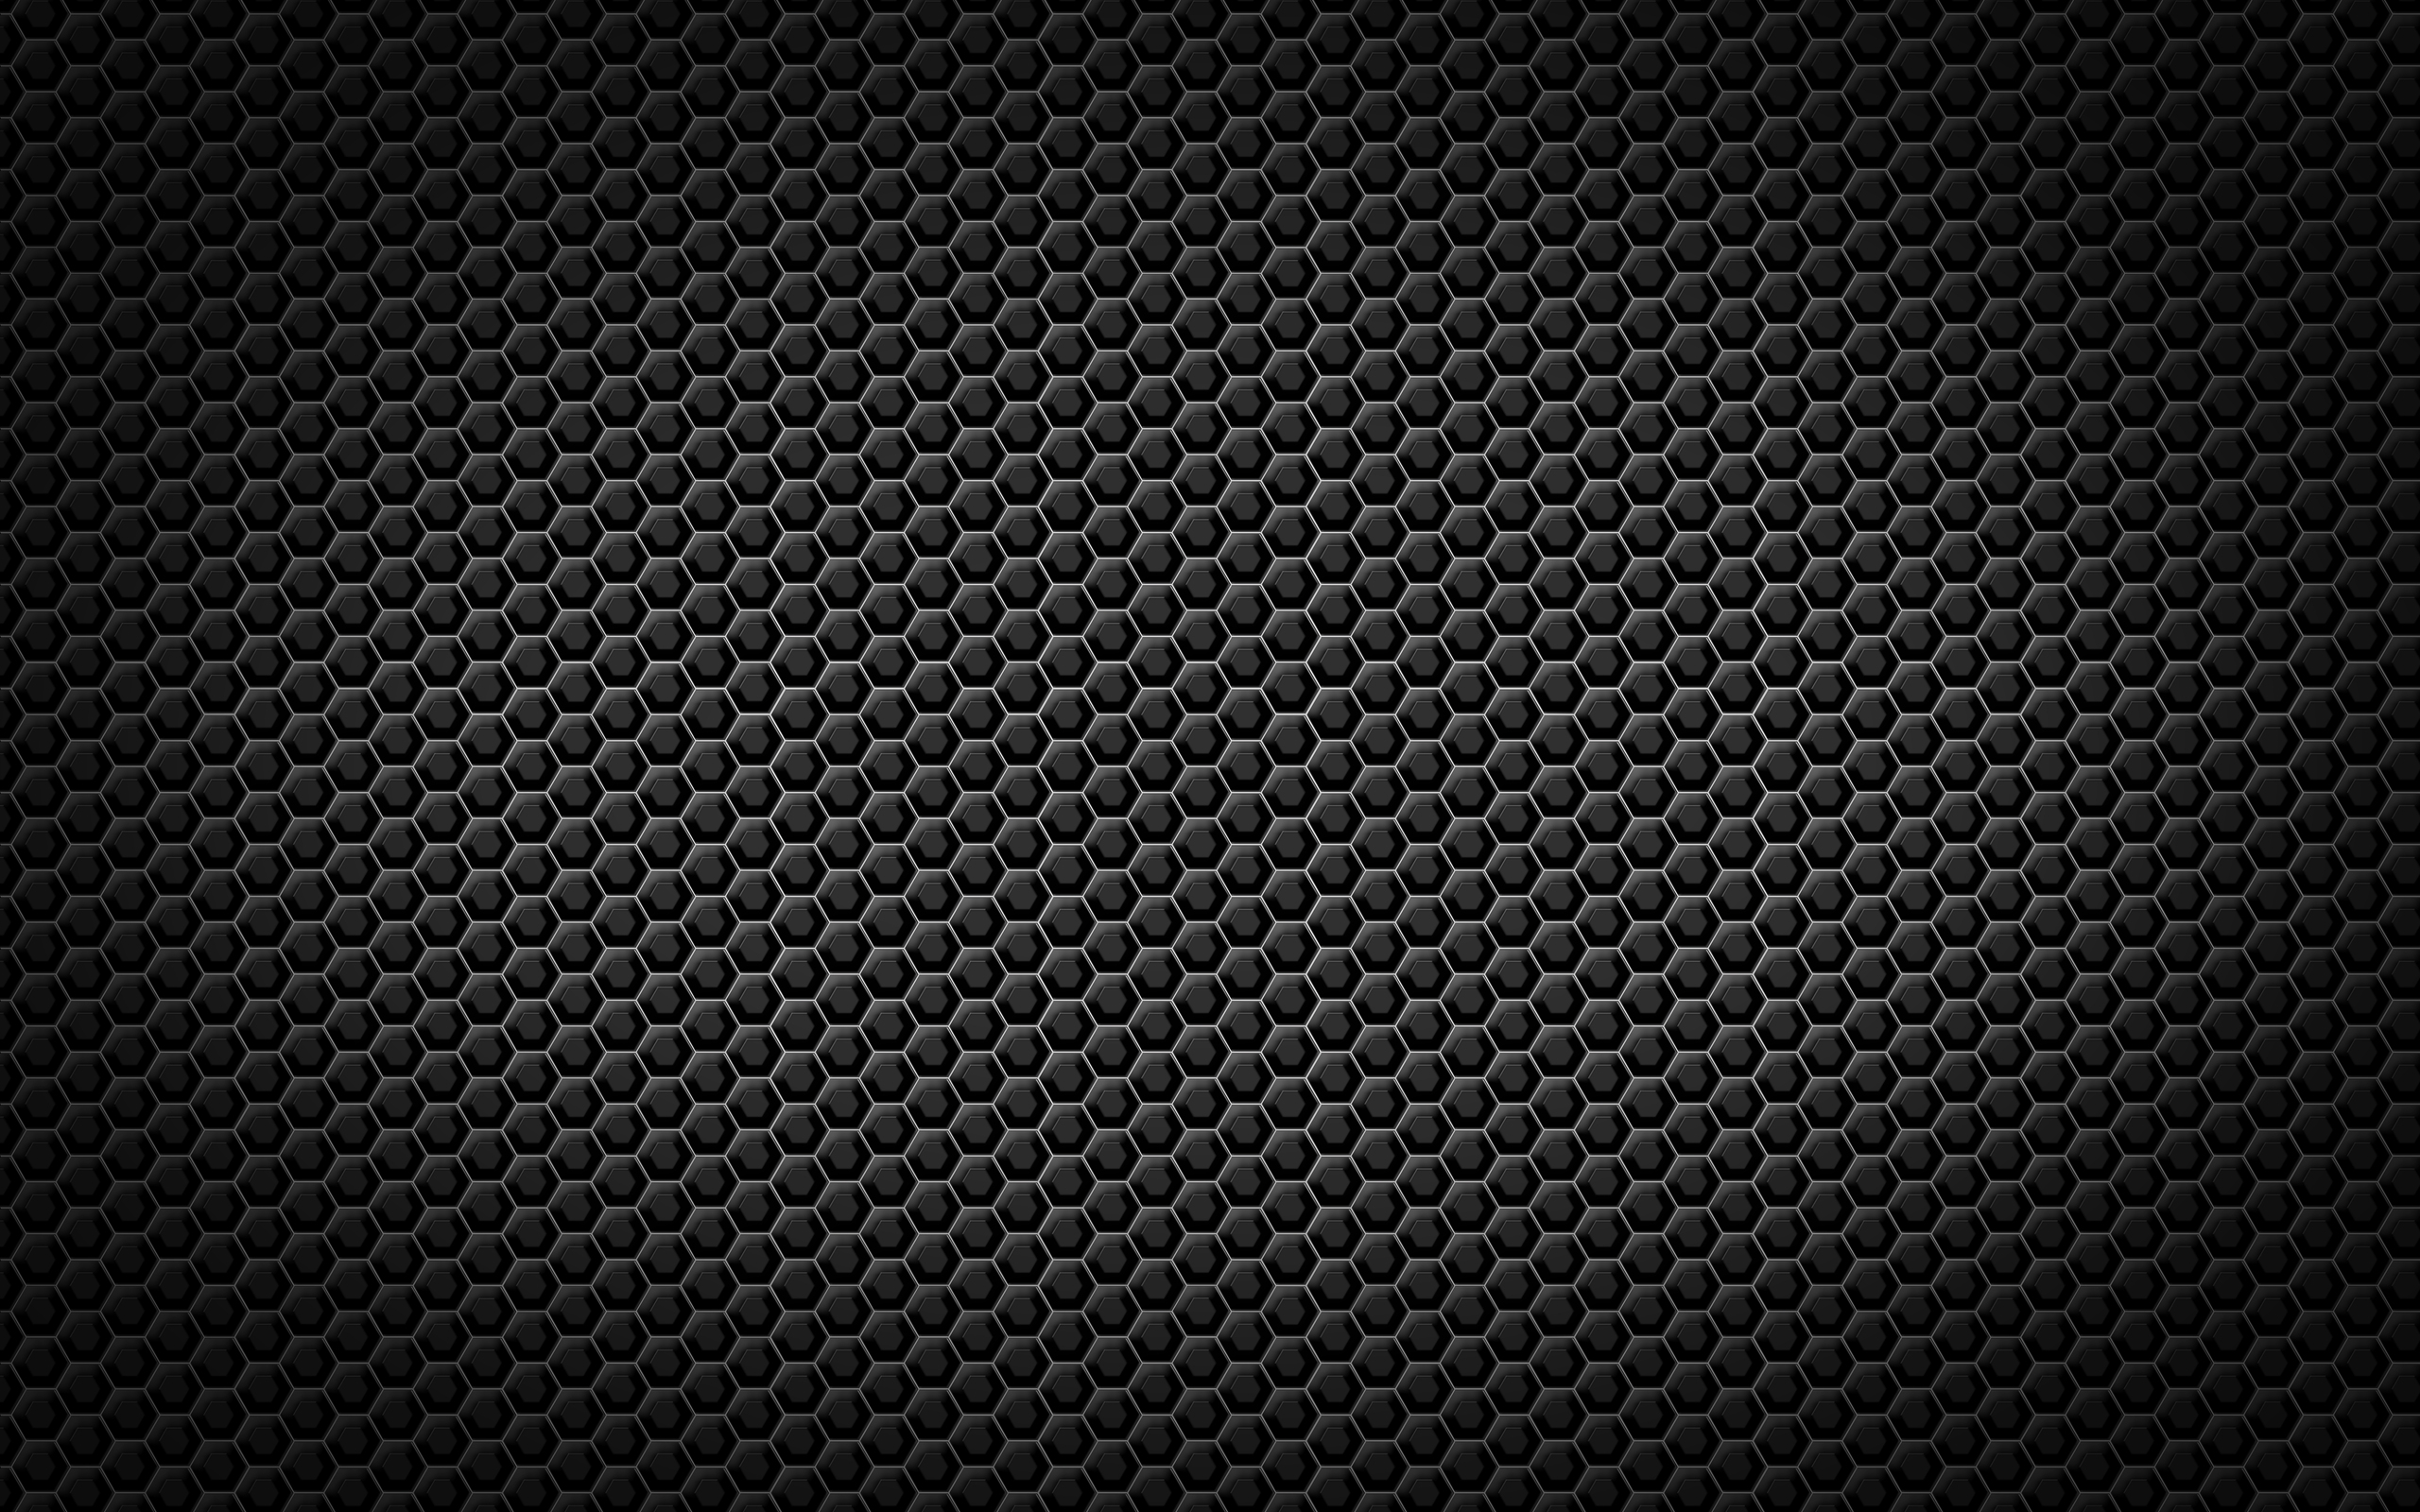 Black Pattern Backgrounds